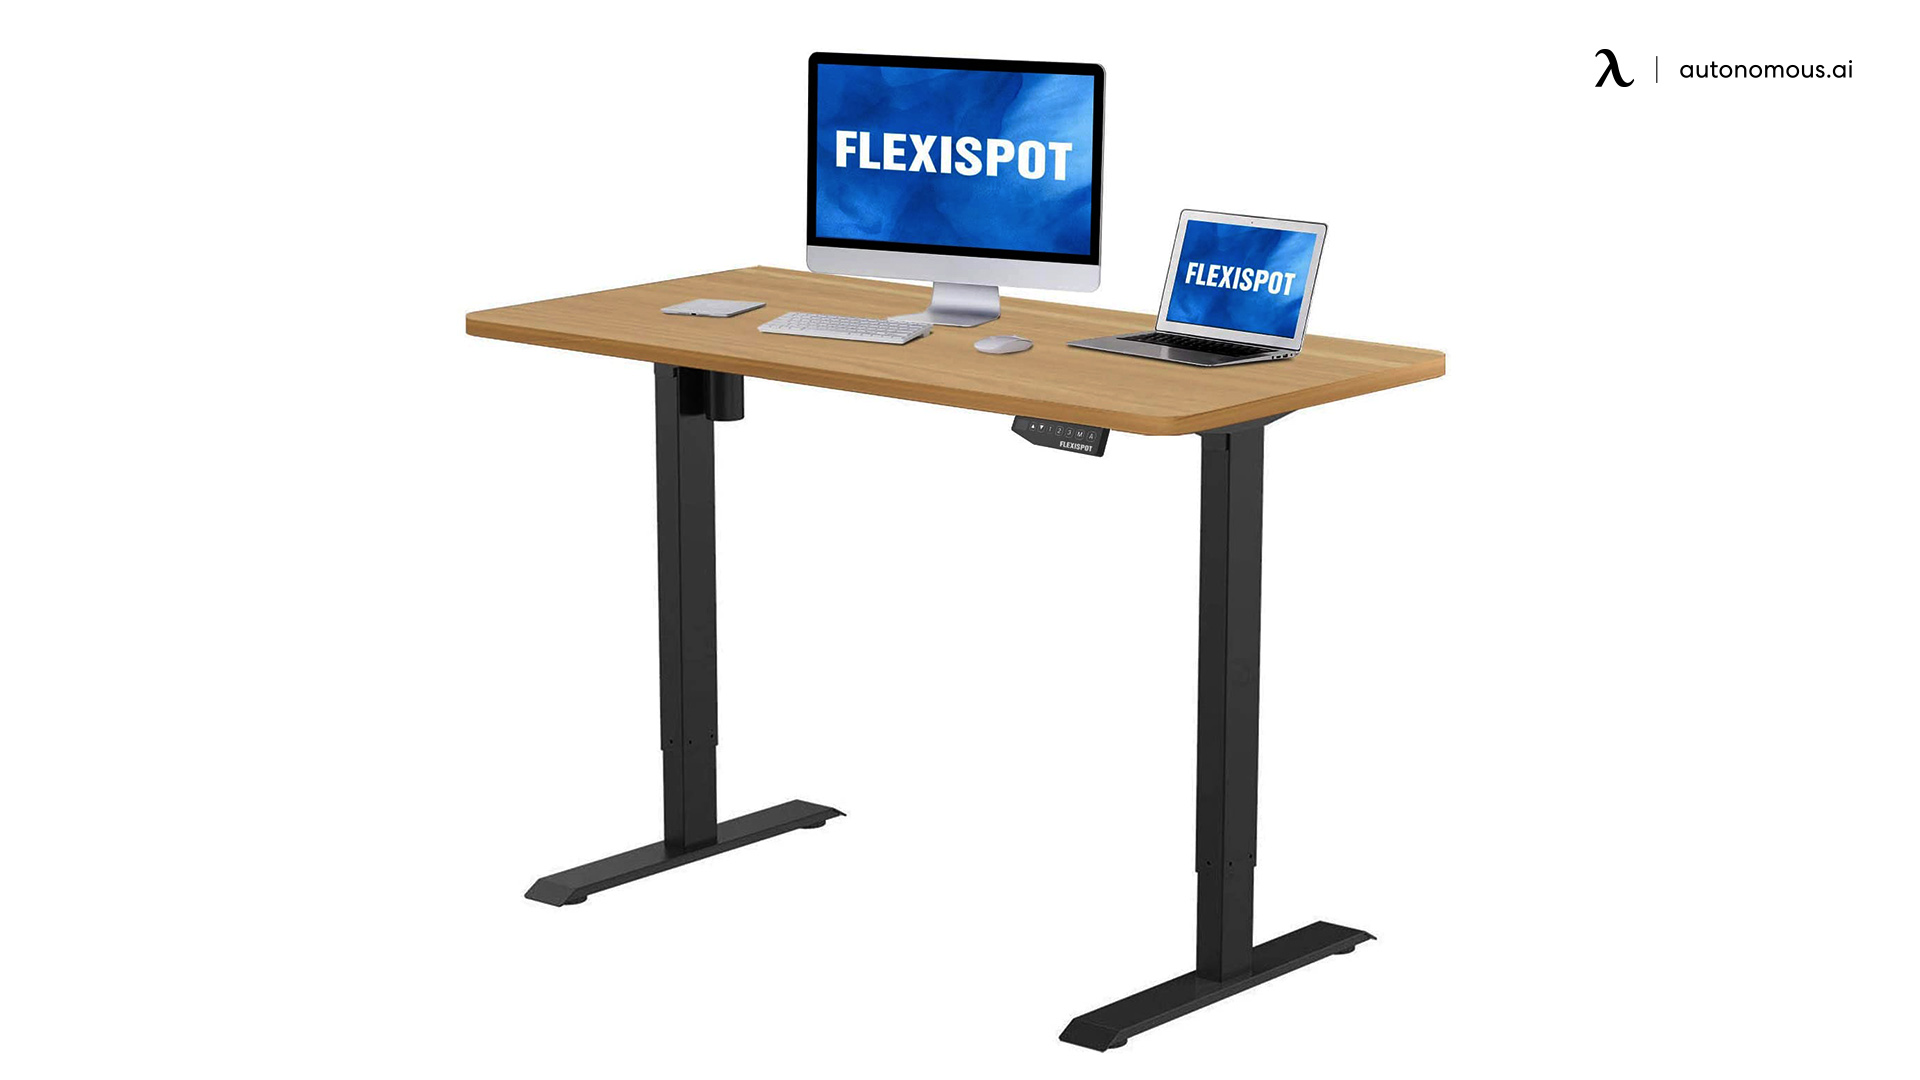 Flexispot 48 X 30 Inches Electric Standing Desk Under $500